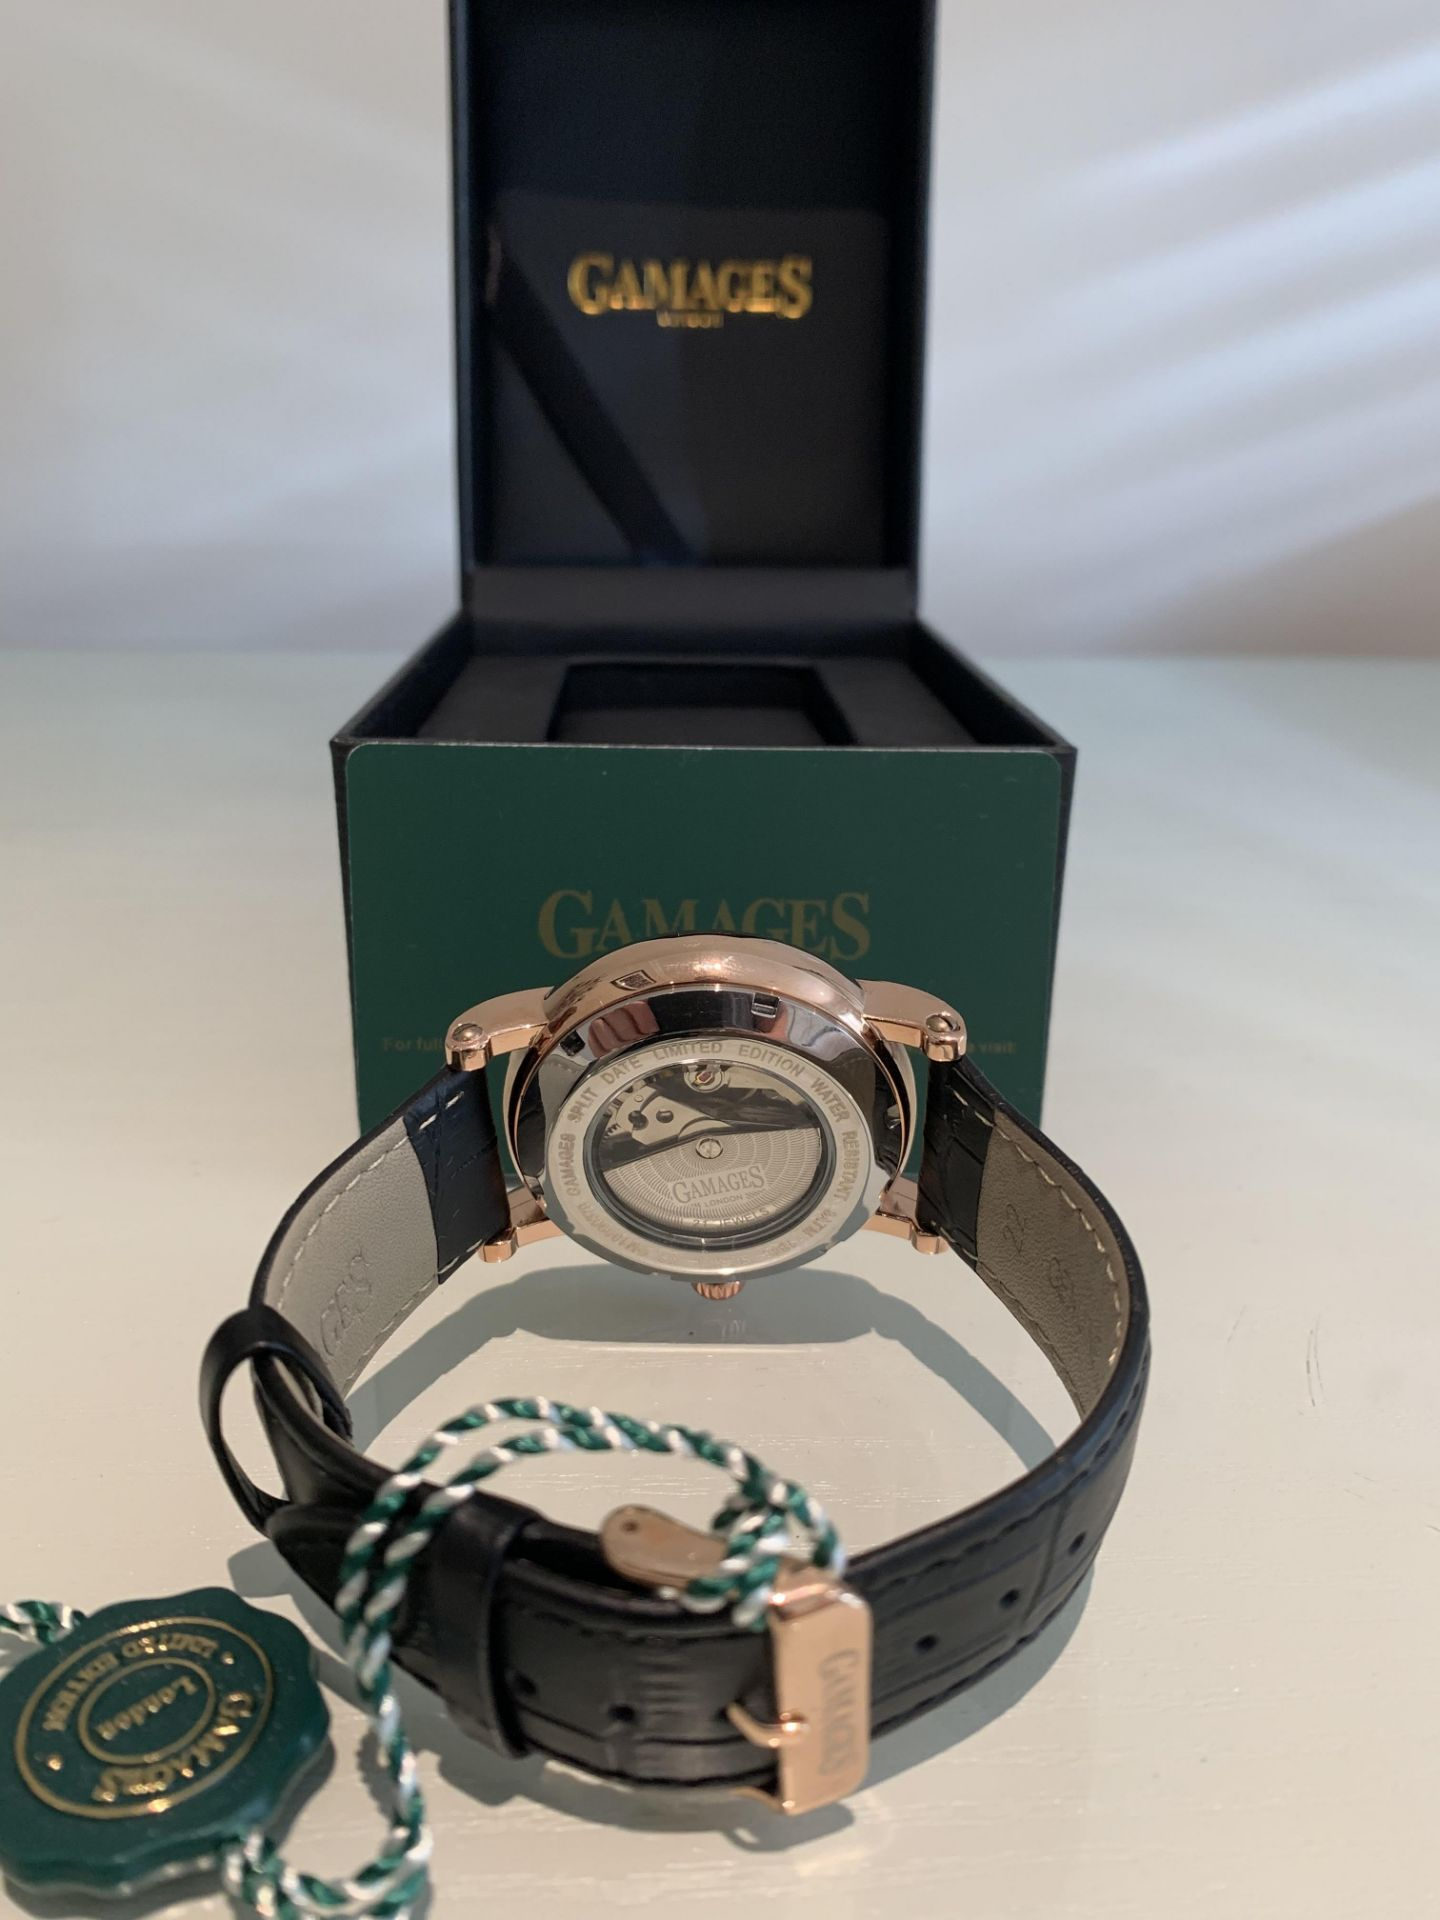 Limited Edition Hand Assembled Gamages Split Date Automatic Rose – 5 Year Warranty & Free Delivery - Image 5 of 5